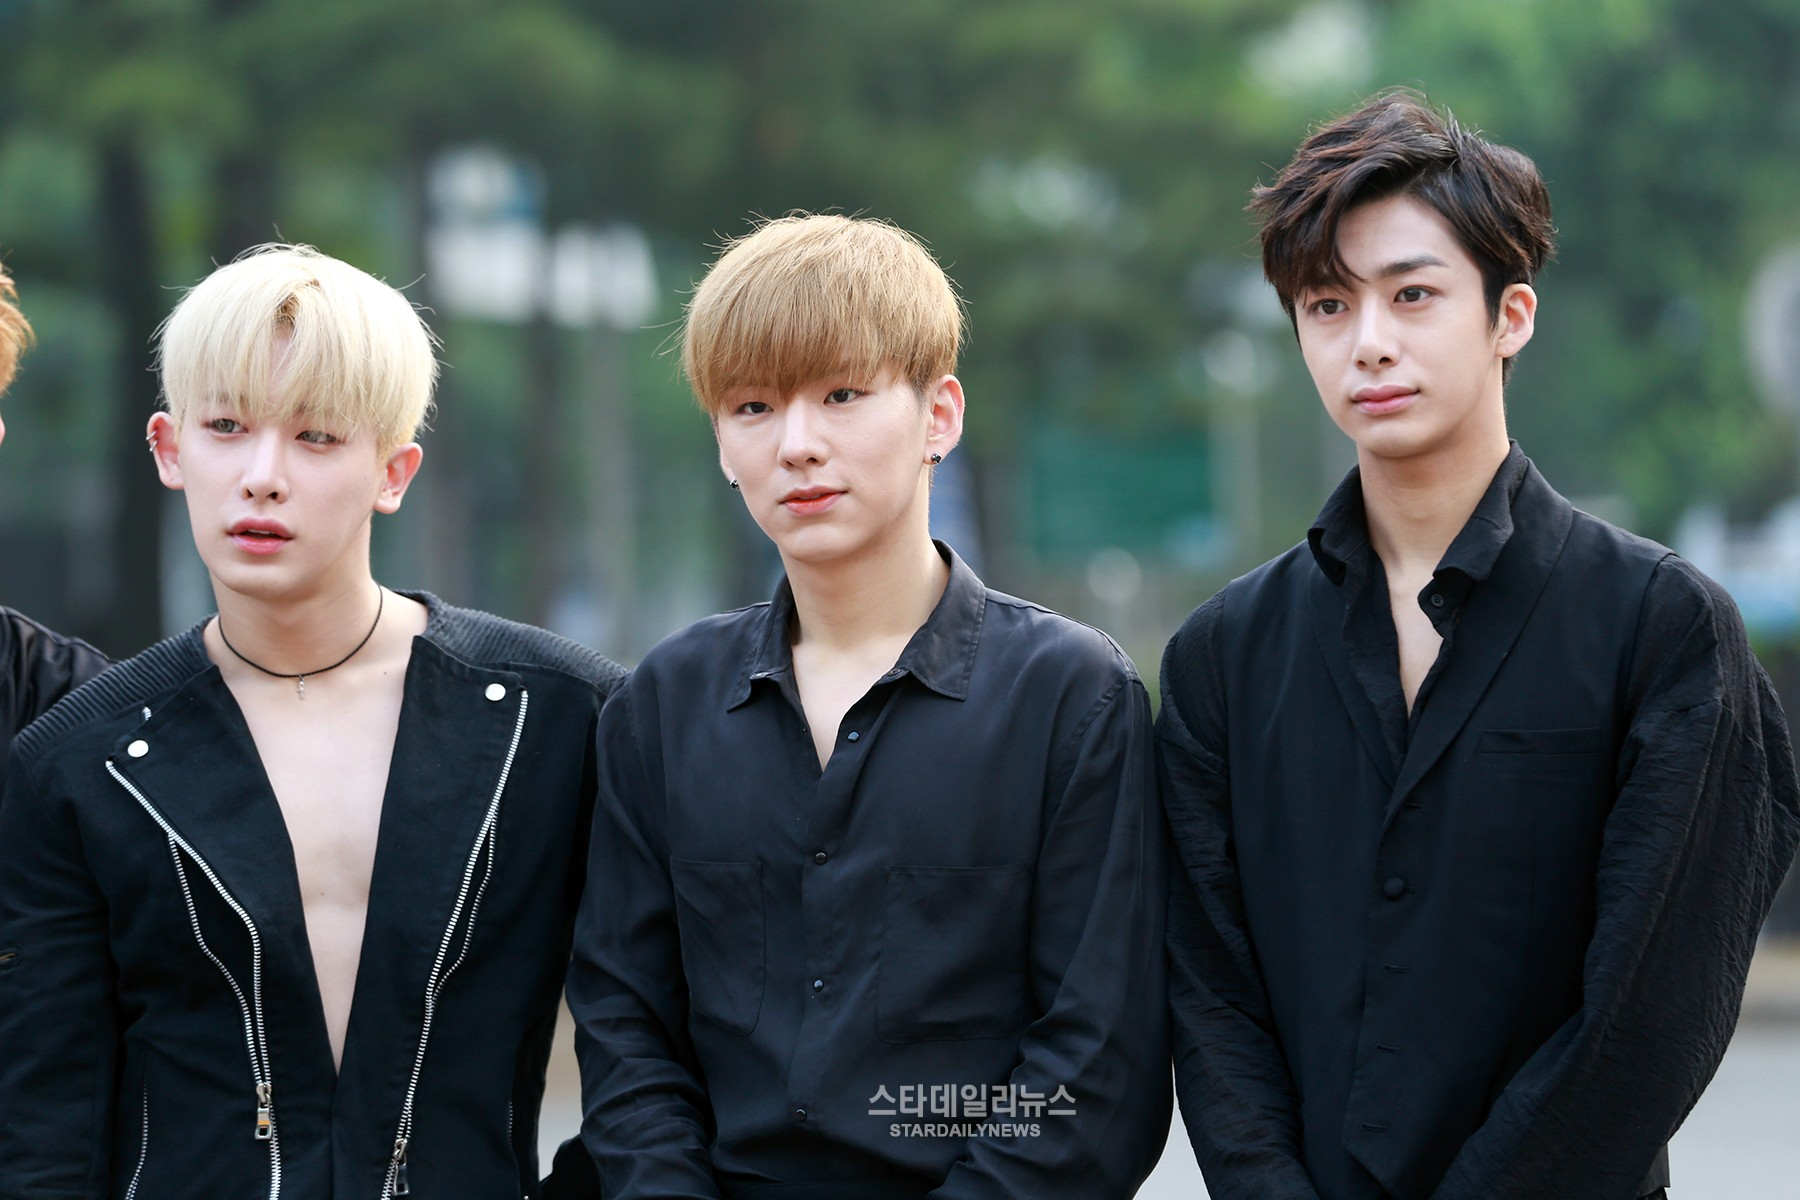 MONSTA X's Wonho, Kihyun, And Hyungwon Revealed To Have Been In Minor Car Accident